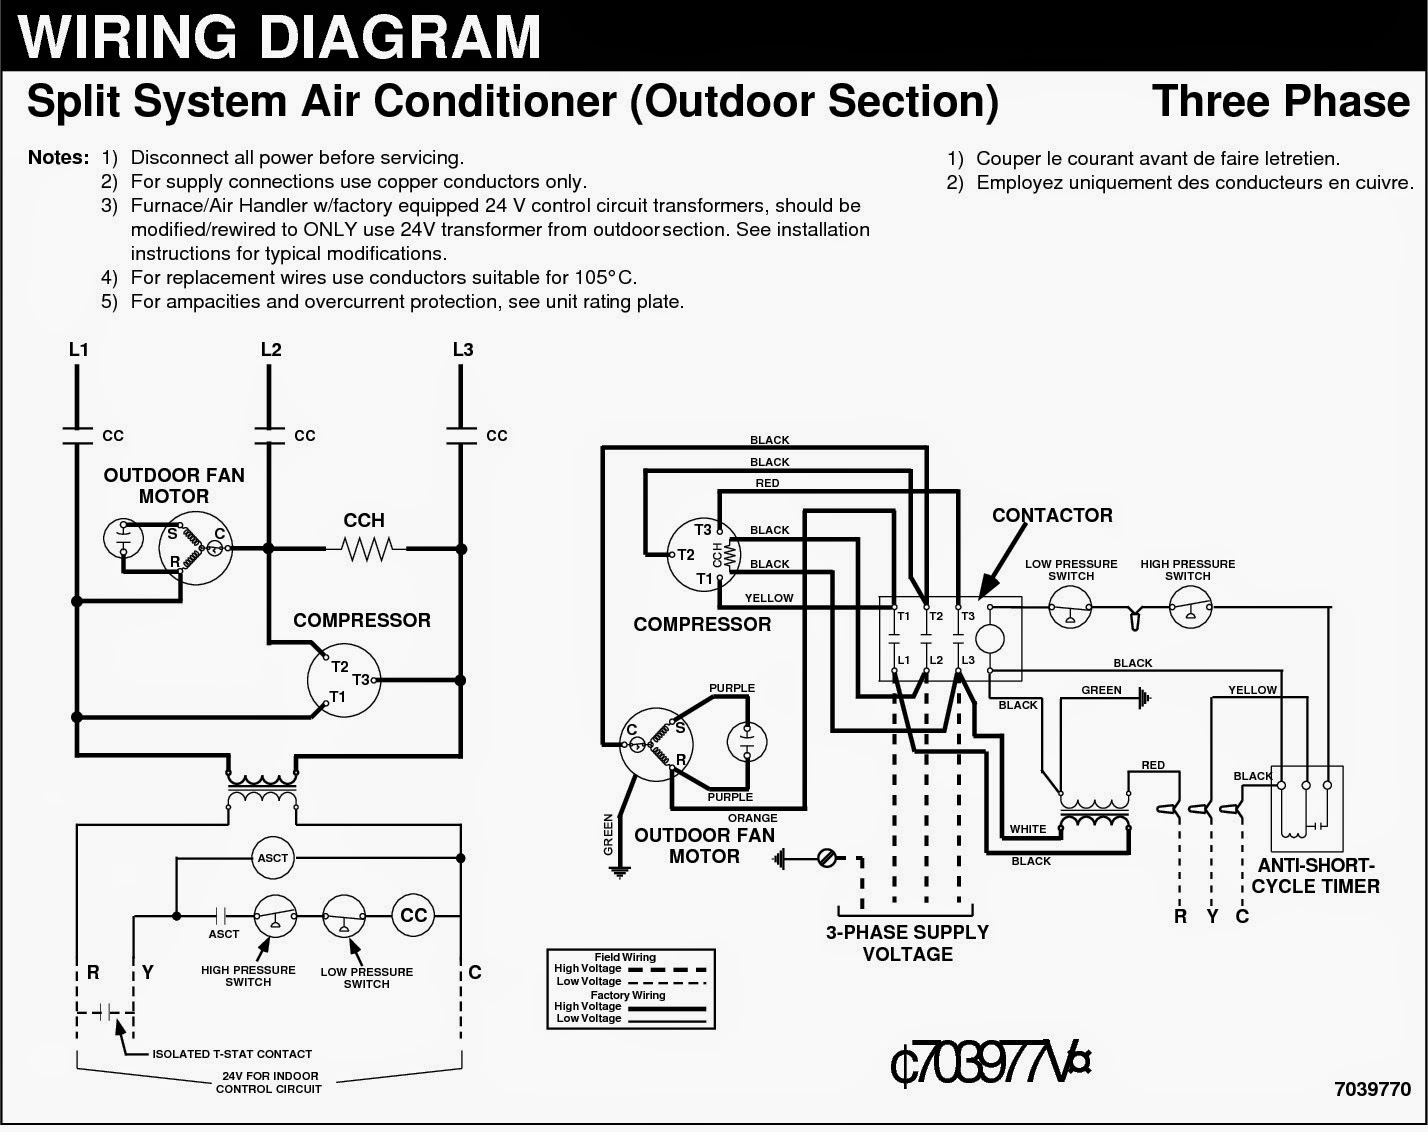 Ac Wiring Diagram Data Car Starter Circuit Home Air Conditioning Bryant